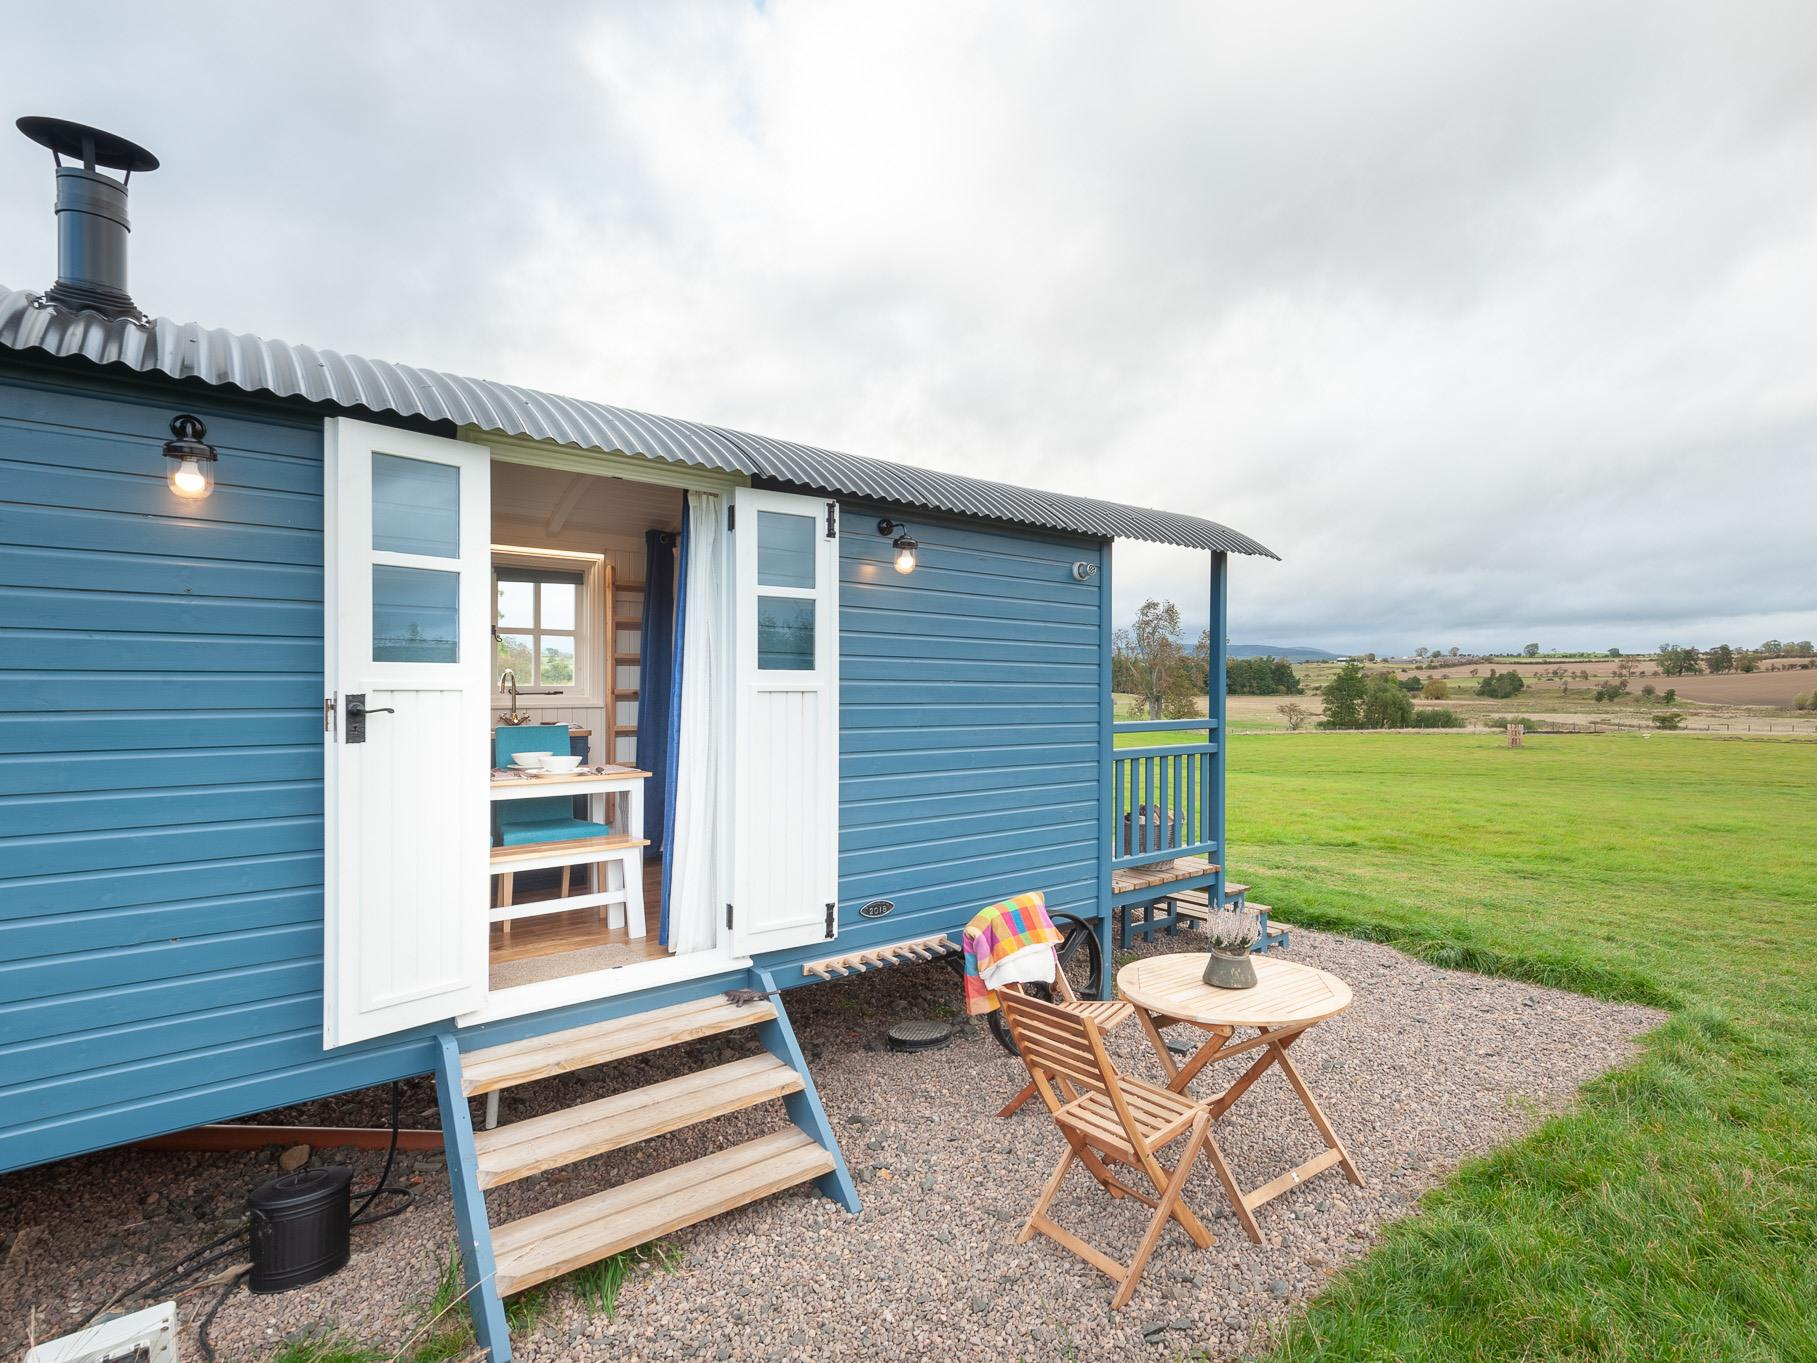 Hut-Family- Ensuite with Shower 2 Adults & 2 Children